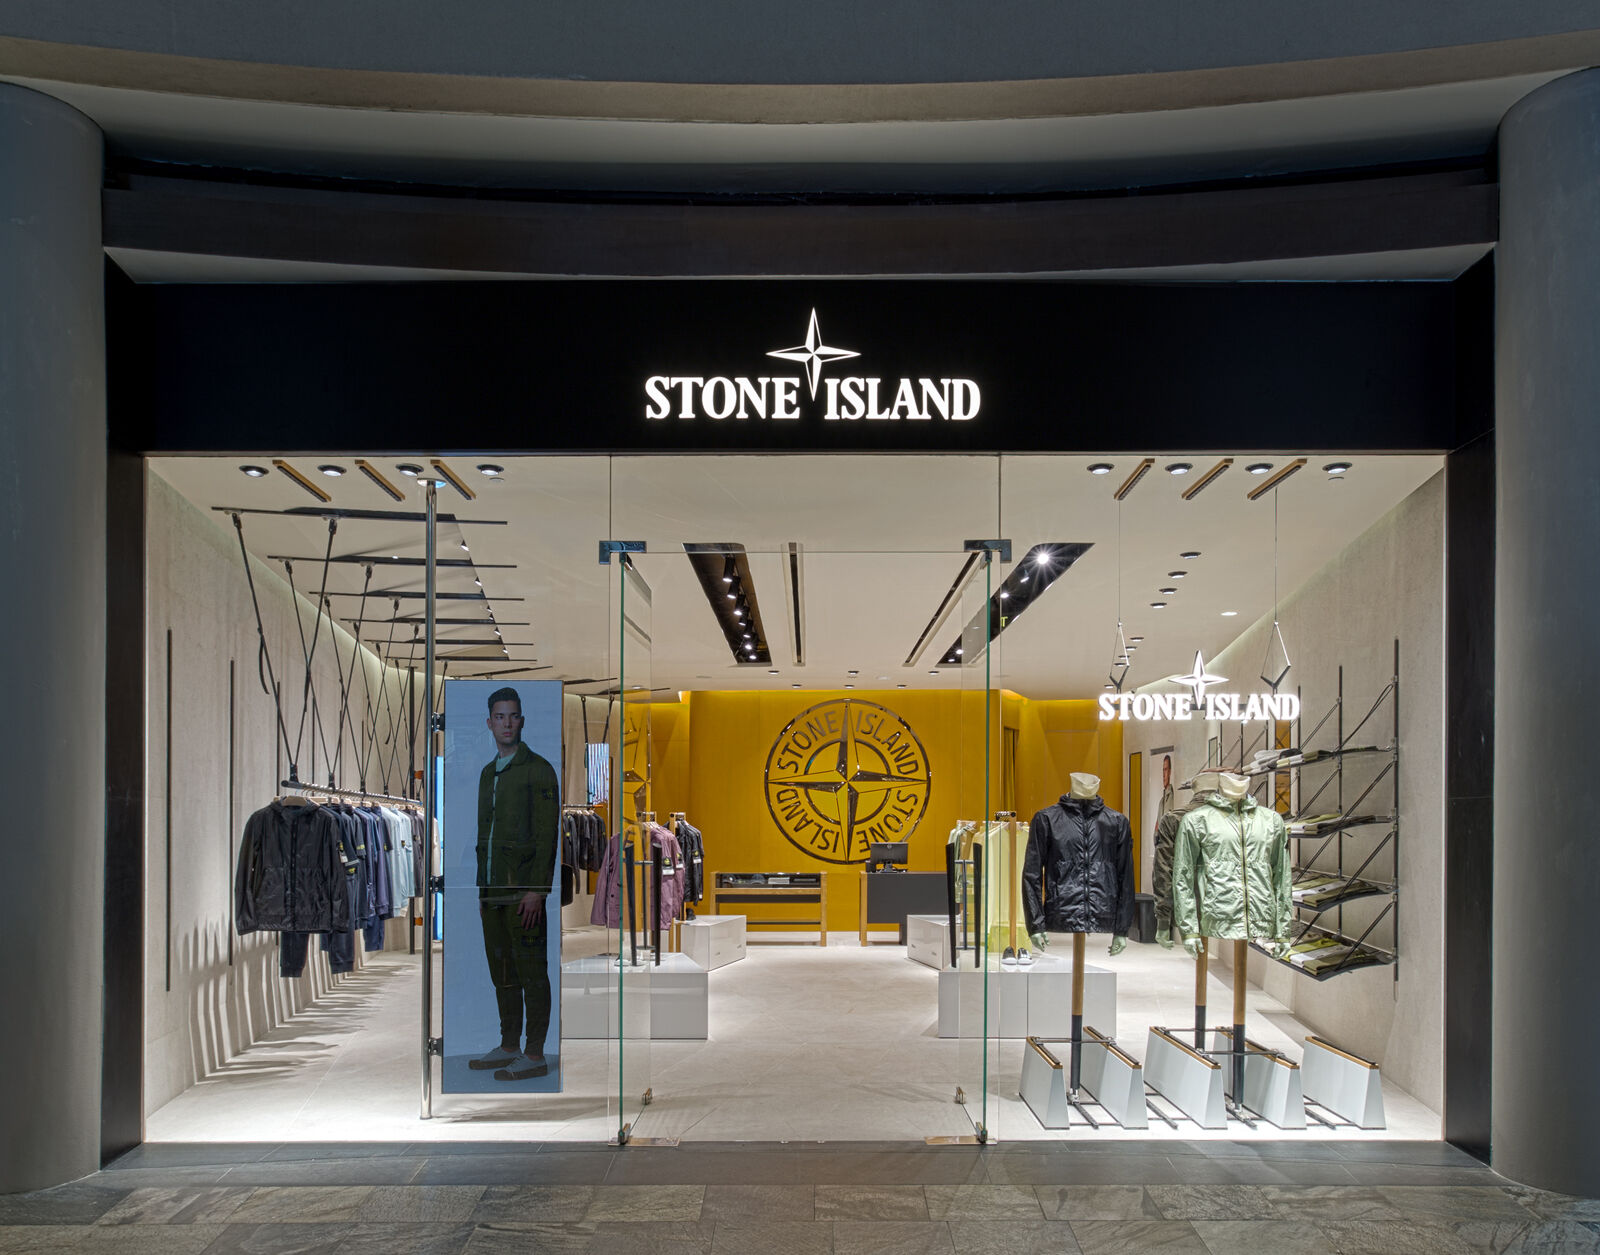 Exterior view of a lit up store with a big glass window, glass entrance doors in the center and a back lit Stone Island logo and compass rose on top of the window.